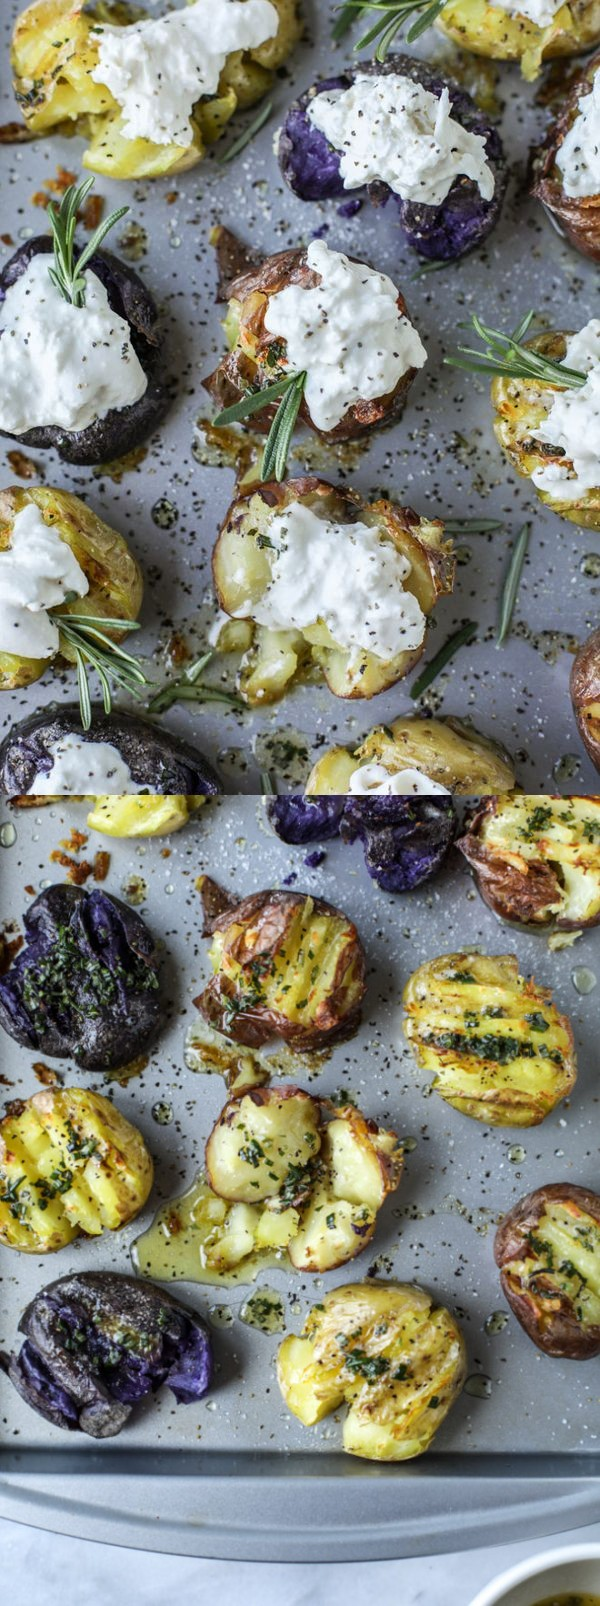 Buttered Rosemary Smashed Potatoes with Burrata